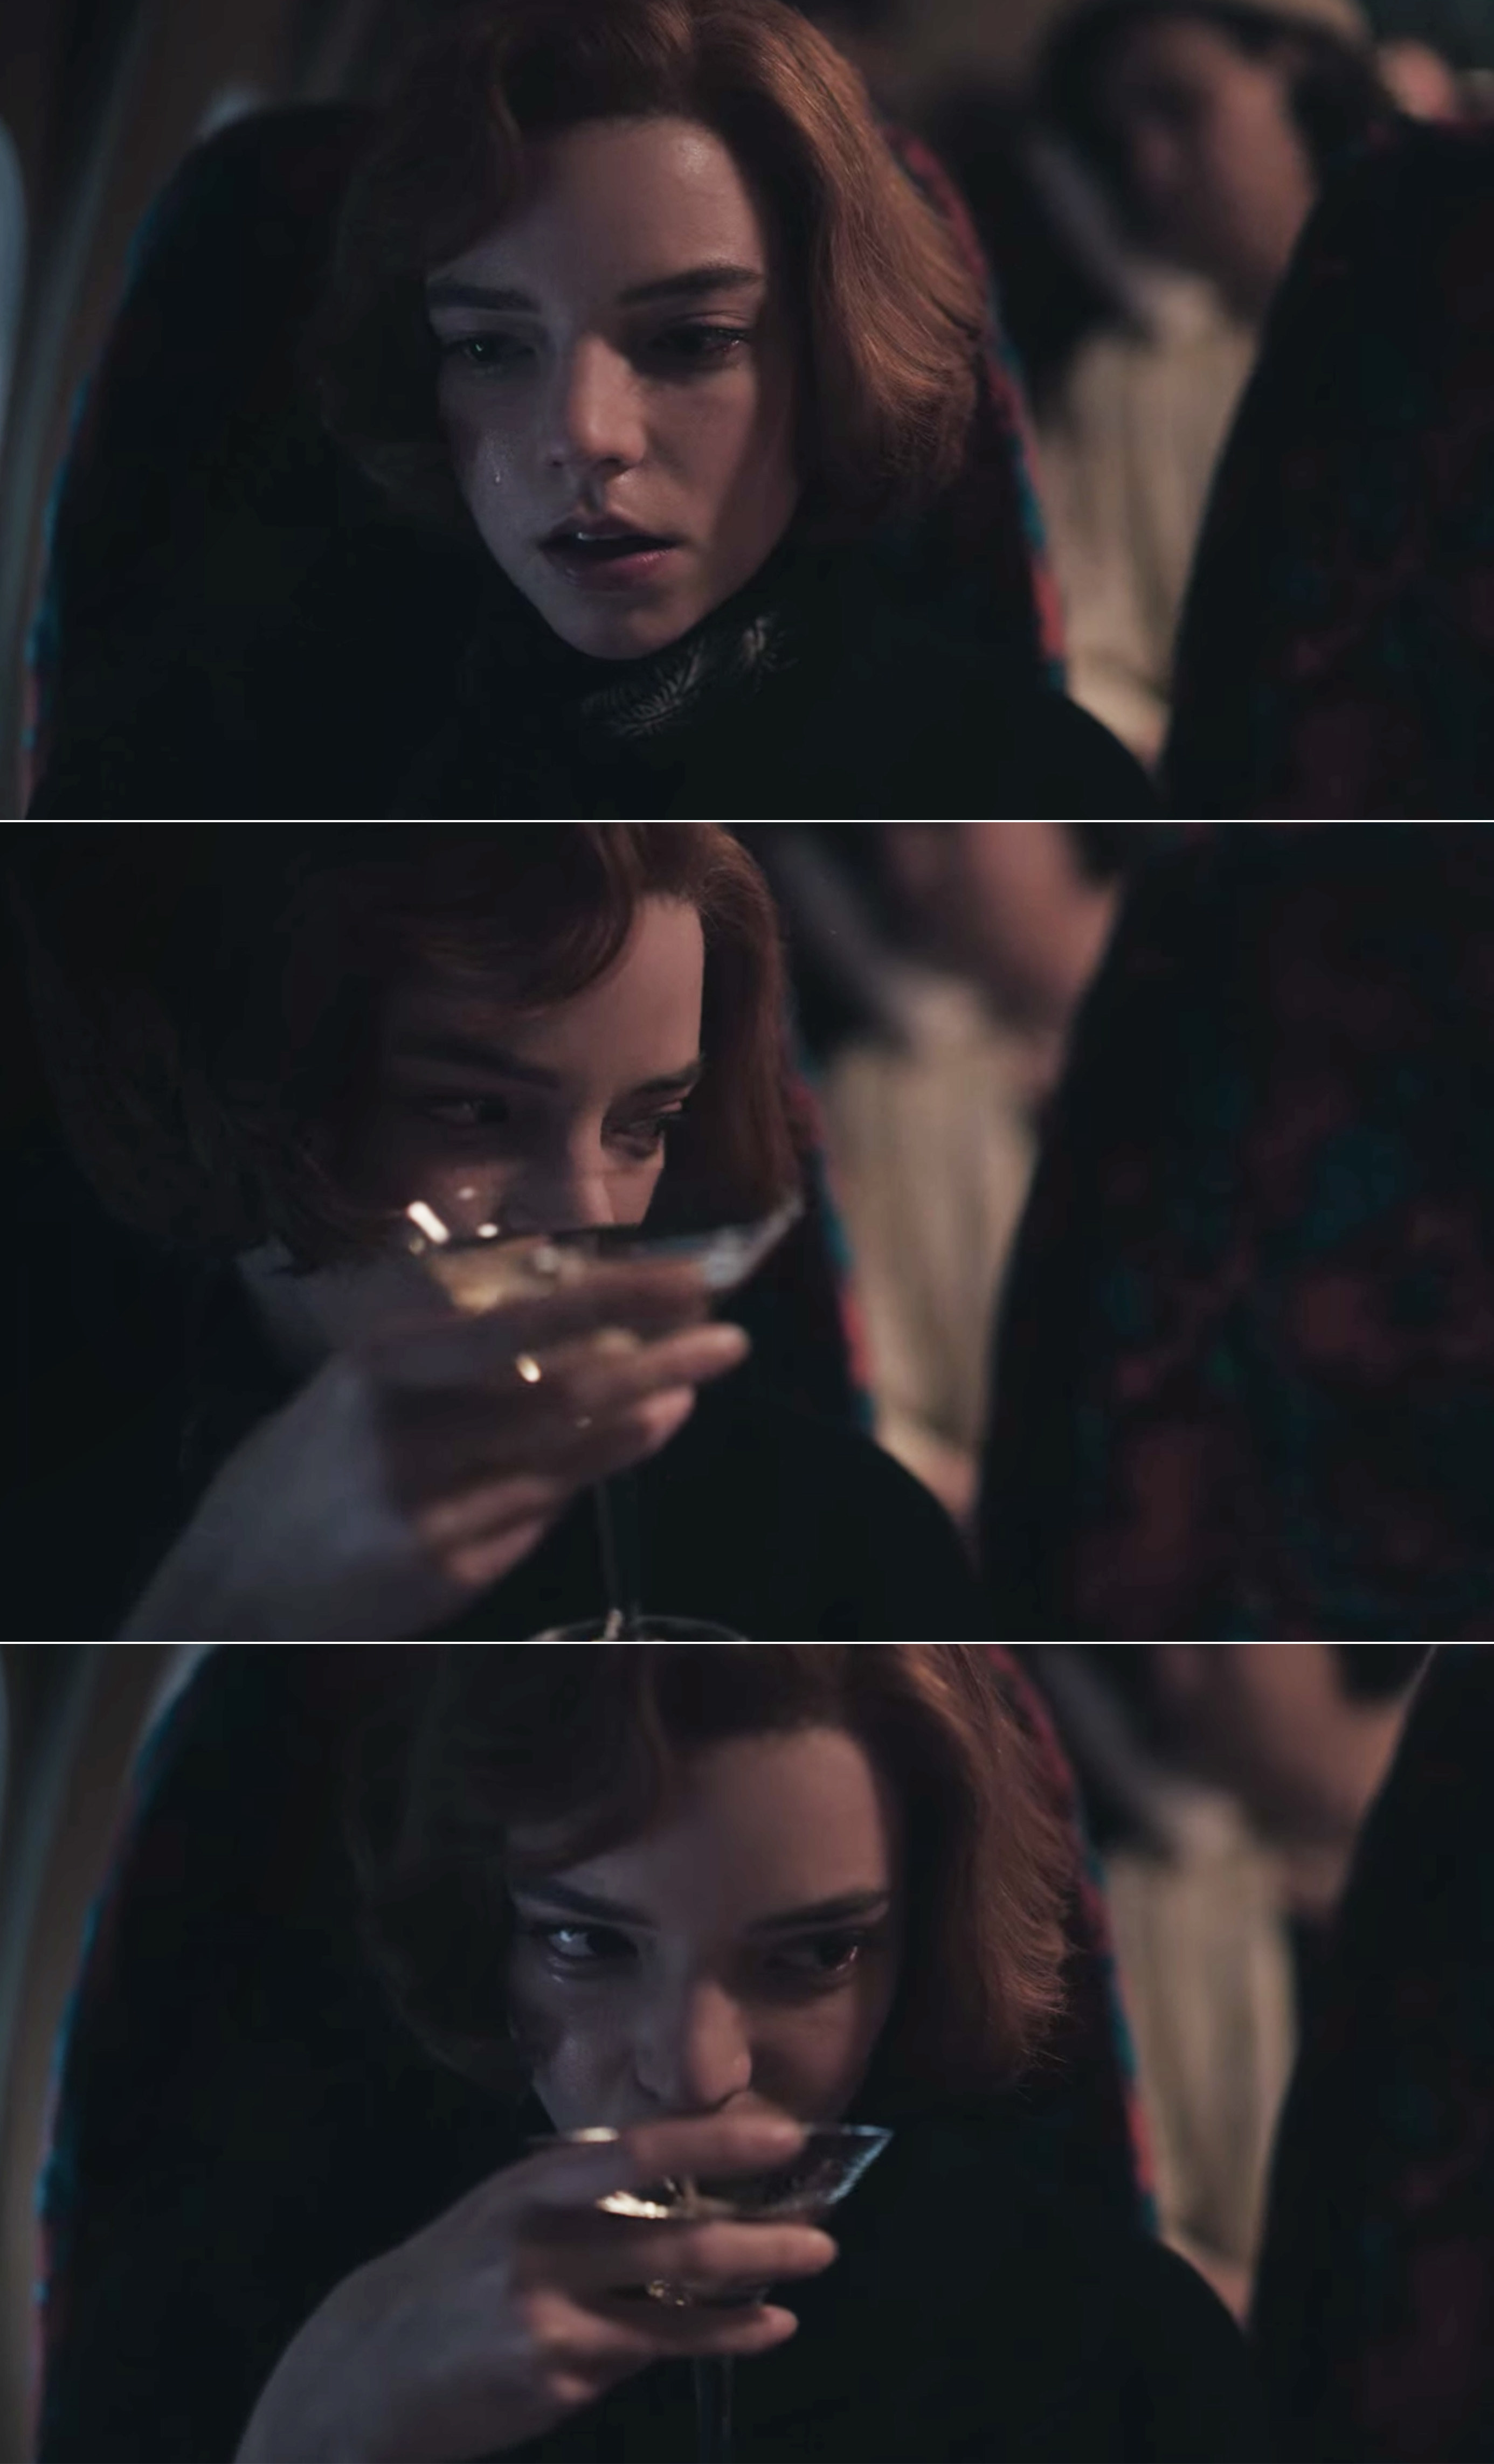 Beth crying and drinking a martini on a plane